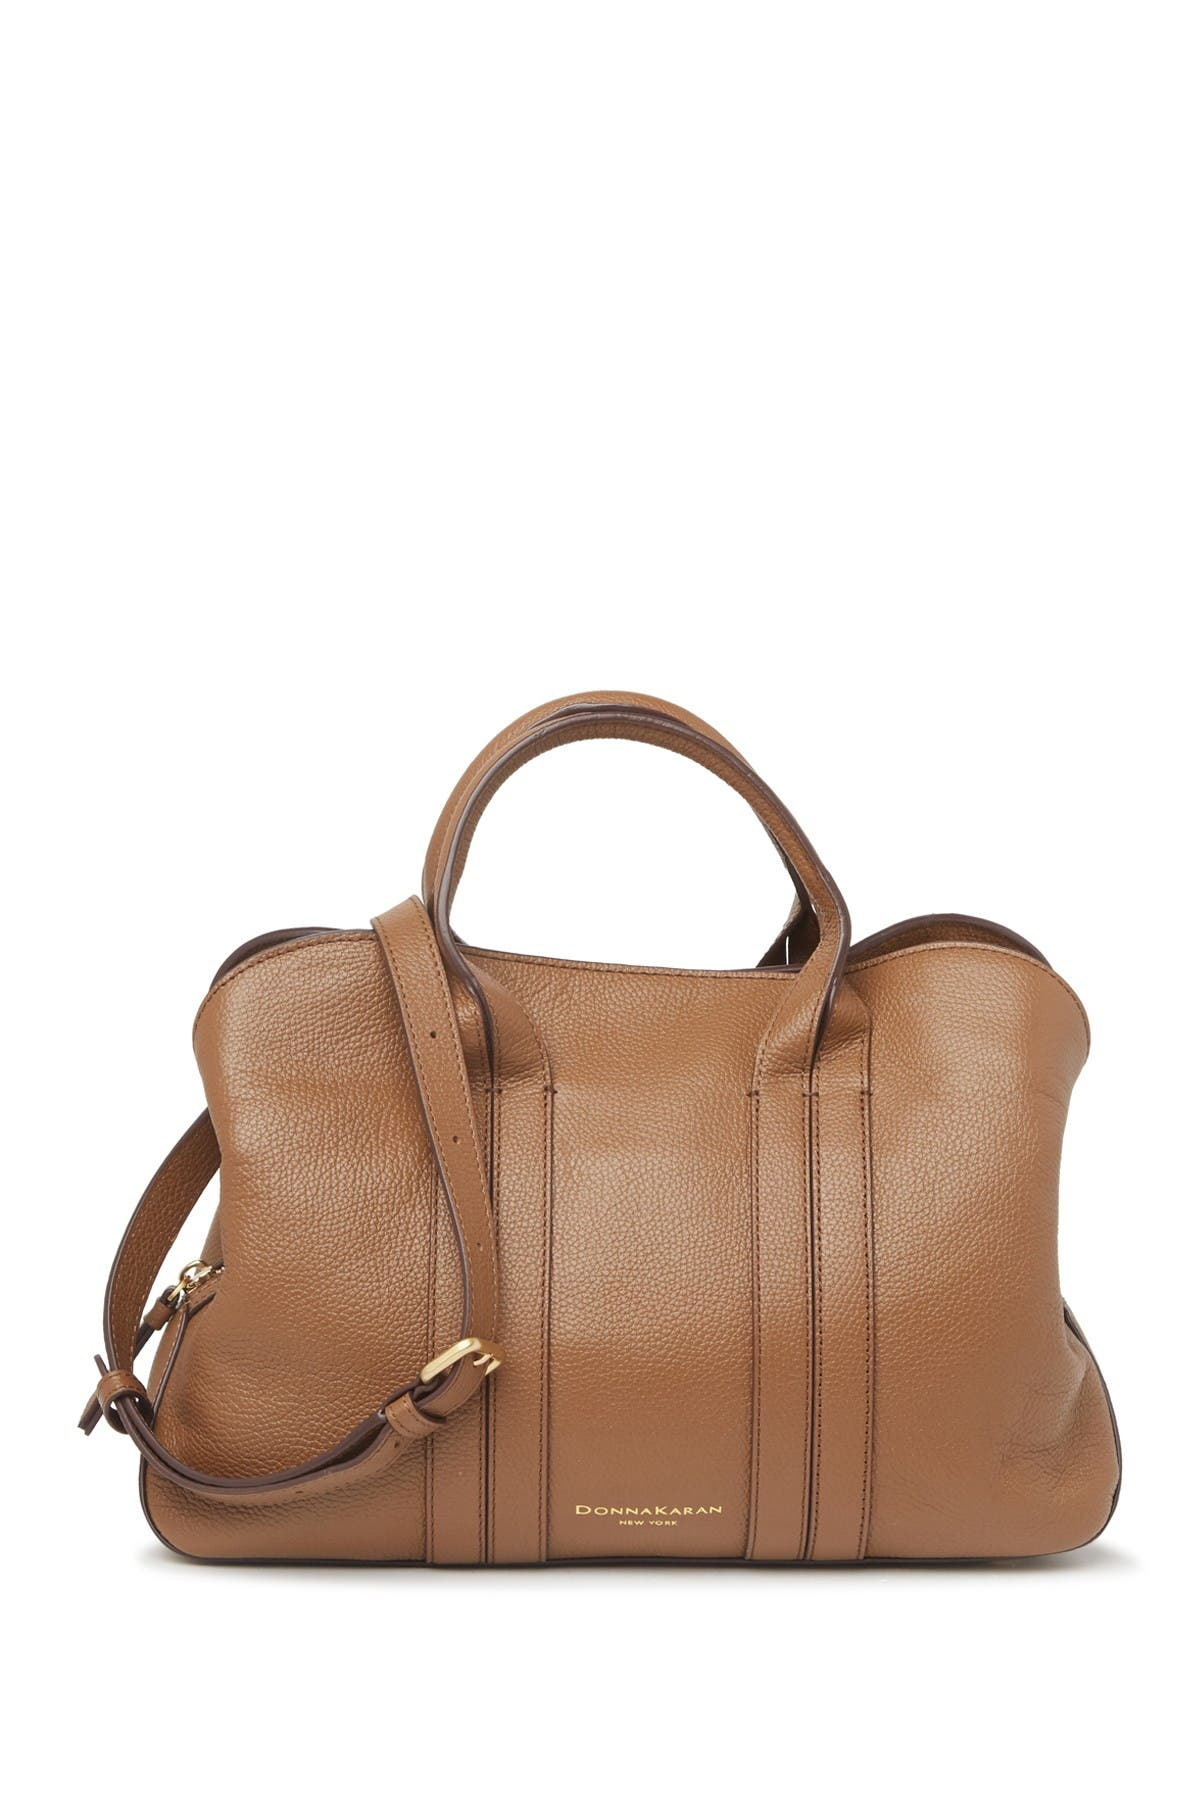 Image of Donna Karan Perry Leather Large Satchel